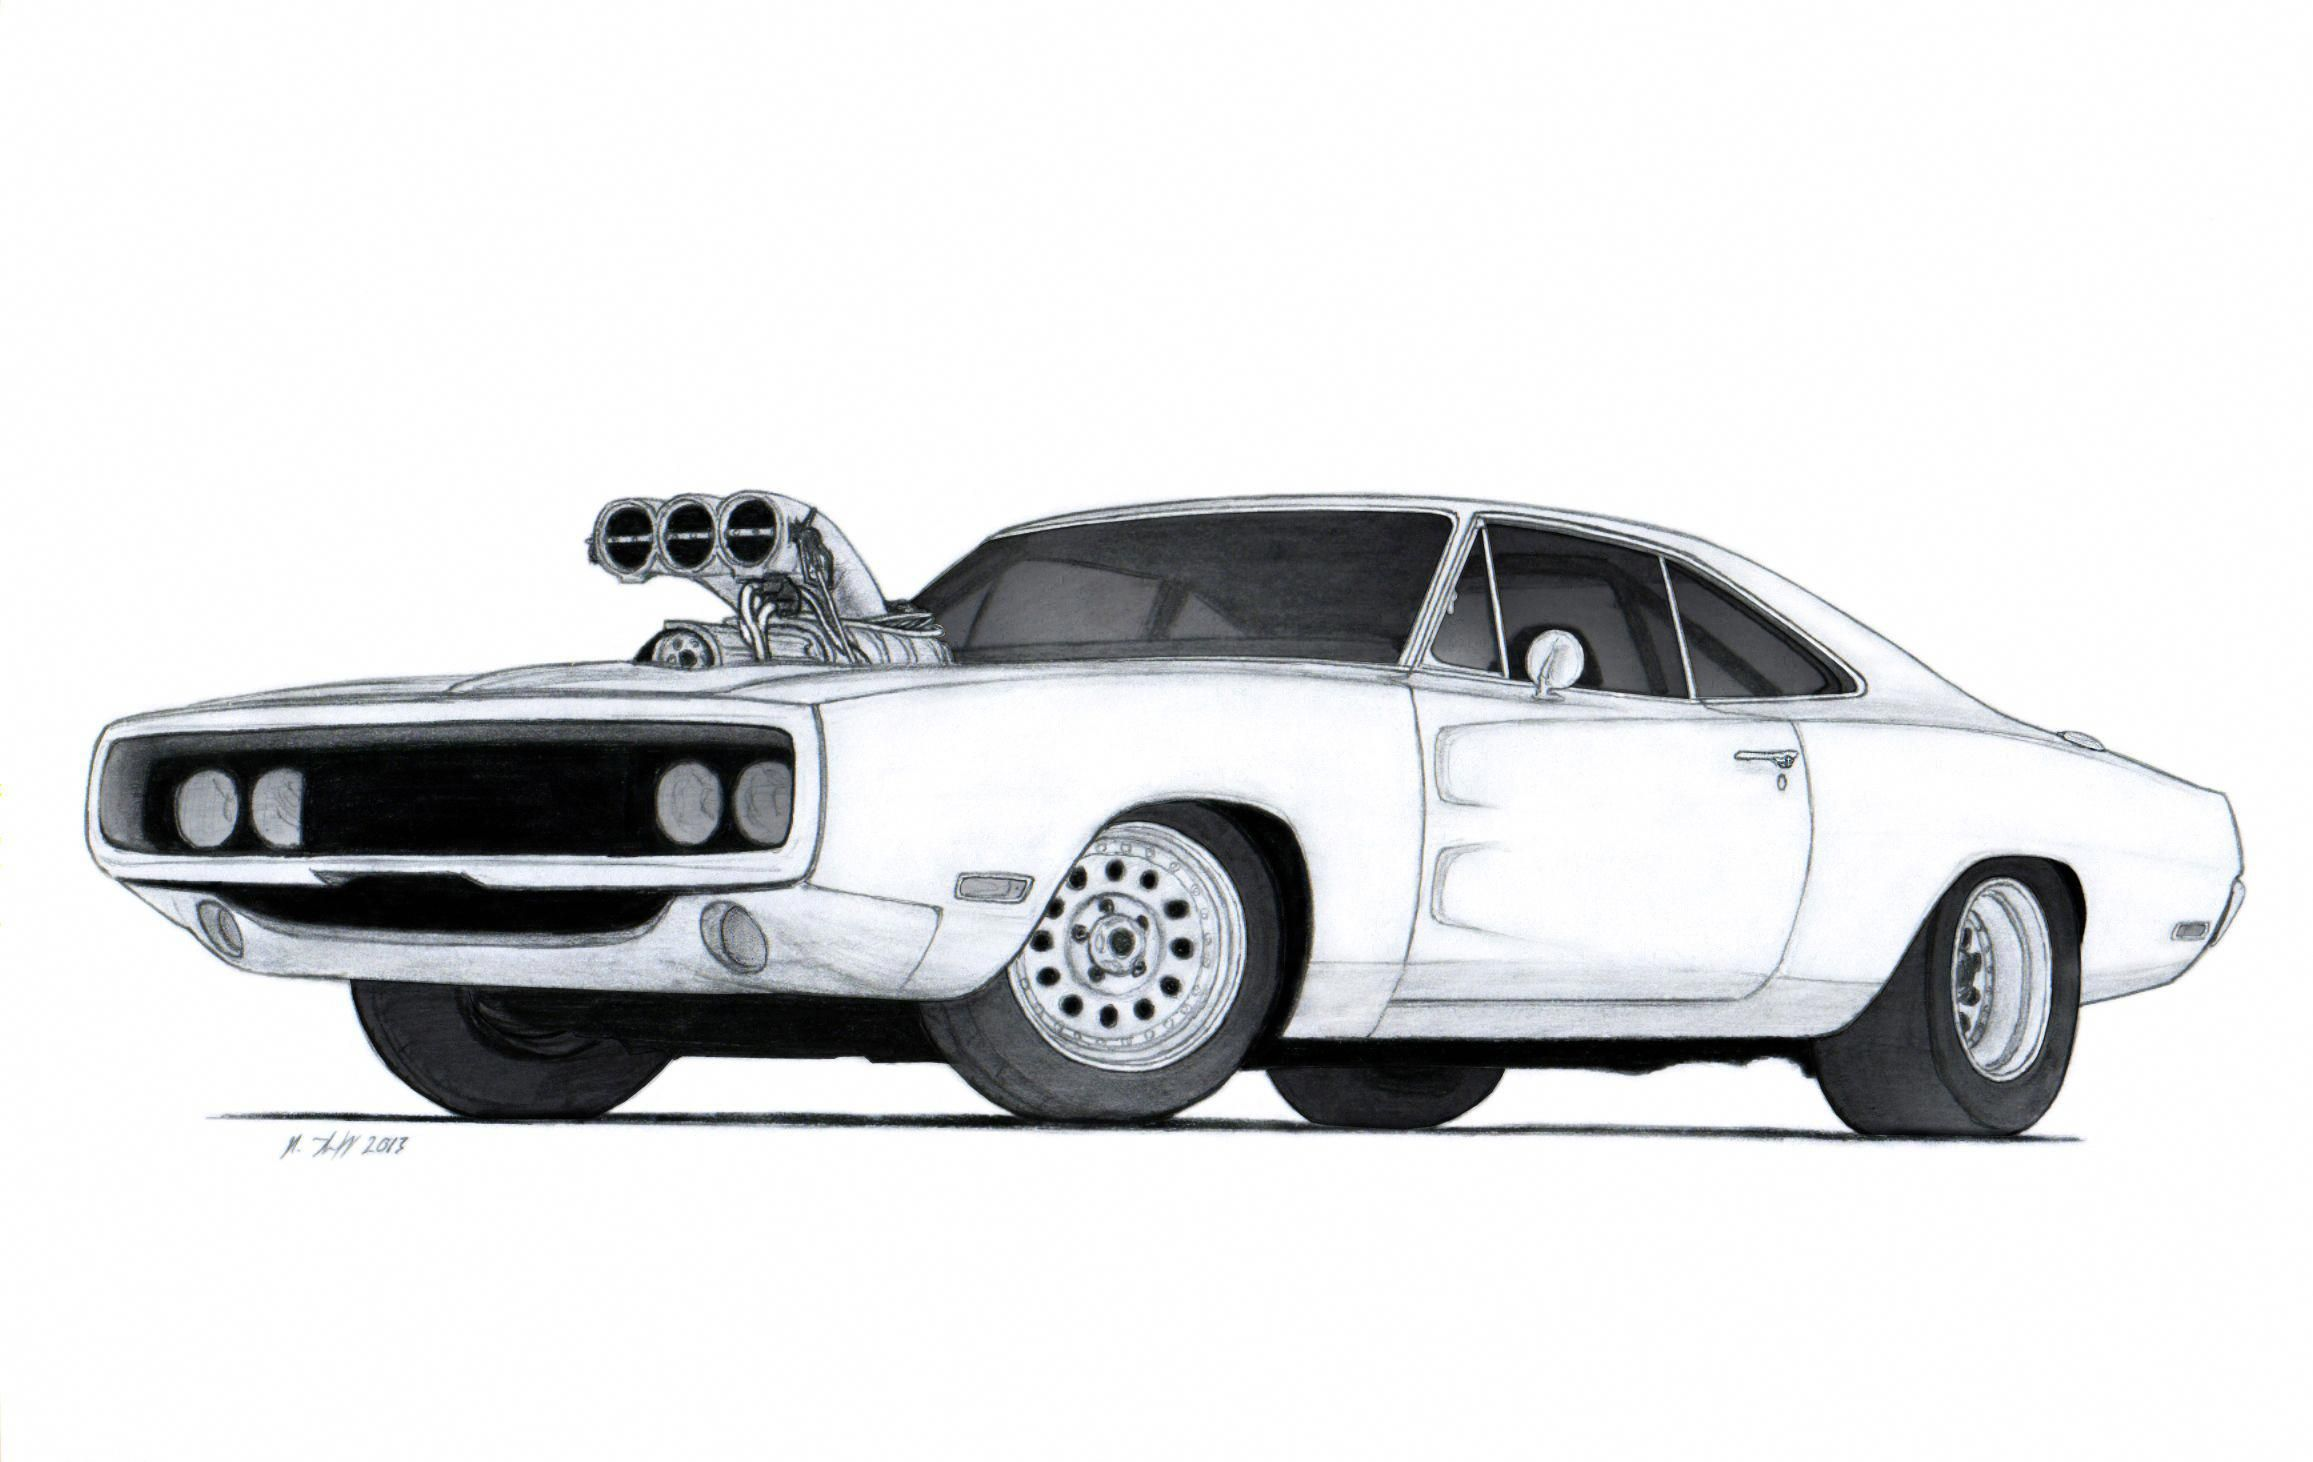 1970 Dodge Charger R T Drawing By Vertualissimo Deviantart Com On Deviantart Dodgechargerclassiccars Dodge Charger Rt Dodge Charger Car Drawings